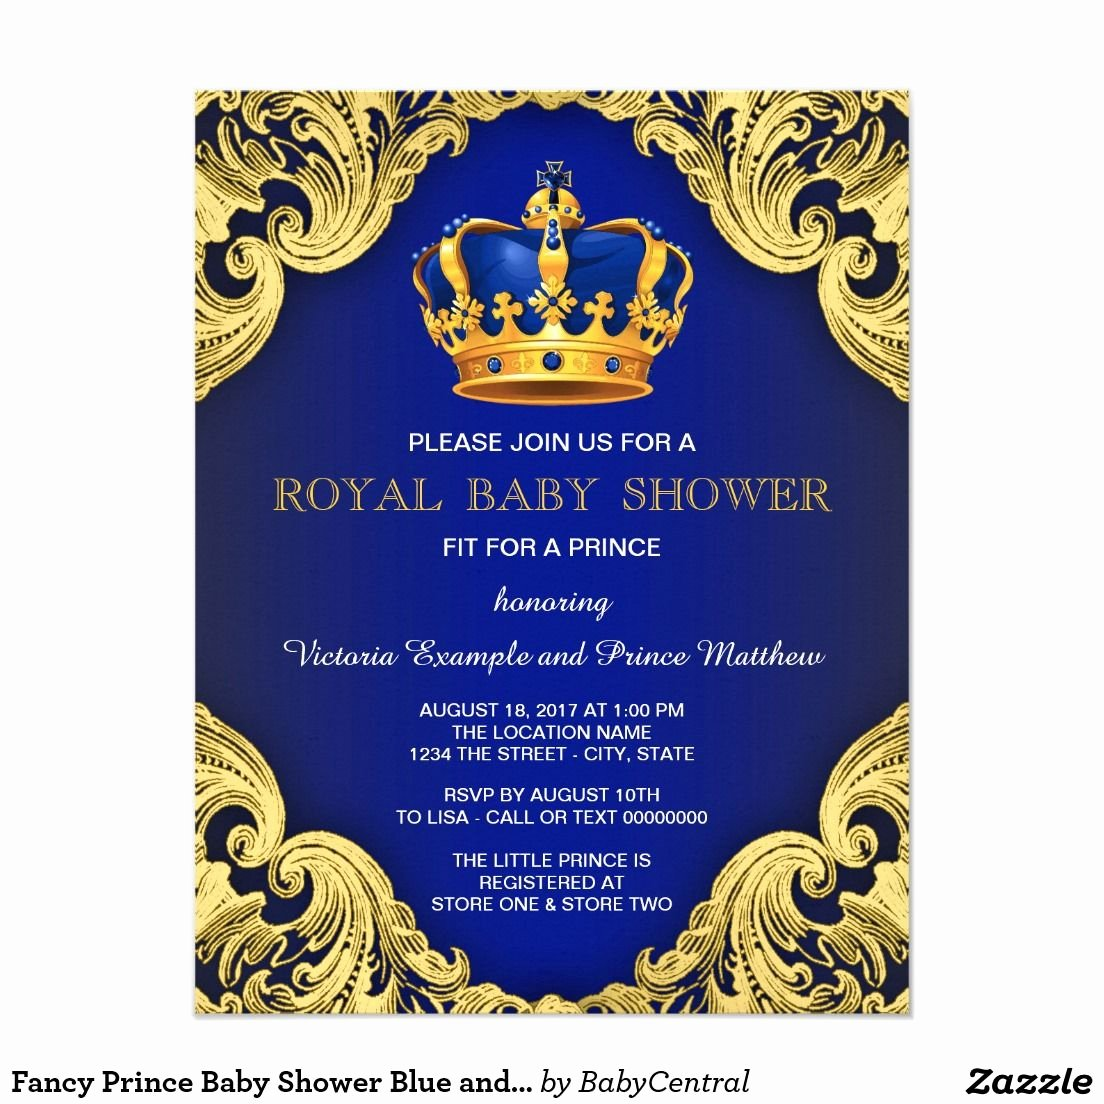 Royal Baby Shower Invitation Template Inspirational Fancy Prince Baby Shower Blue and Gold Invitation